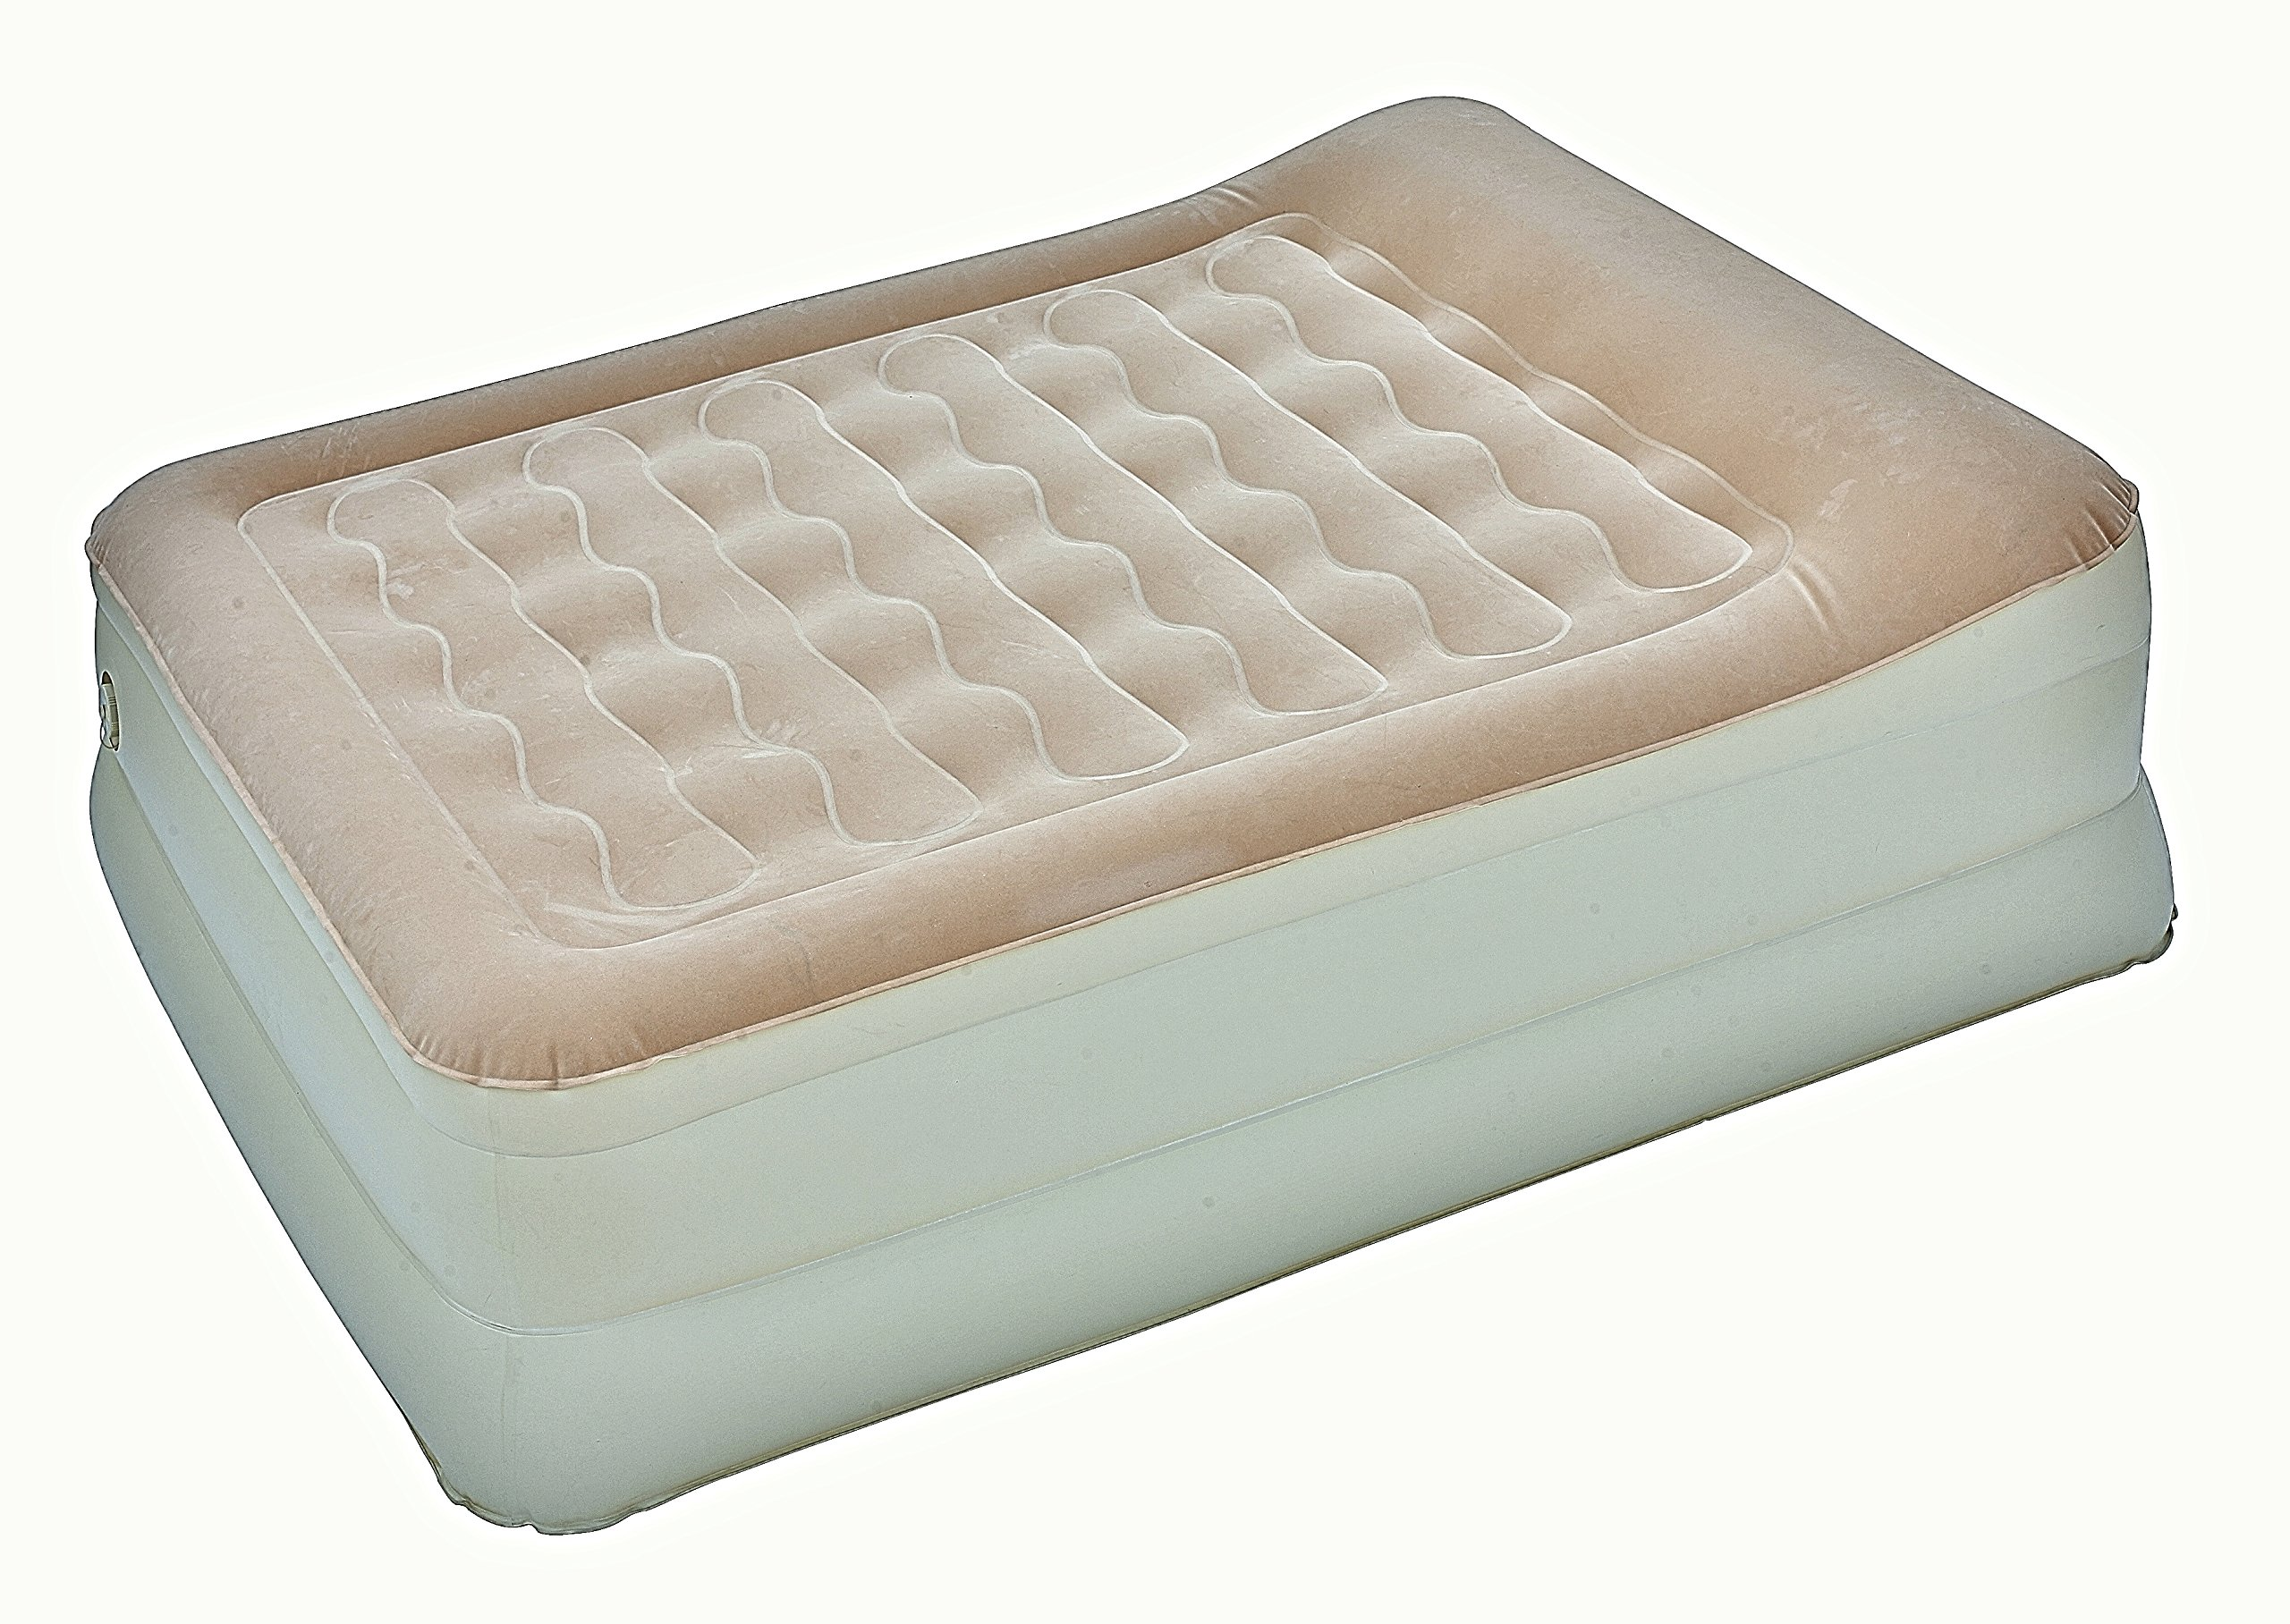 AirCloud MAB-401 Magestic 19-Inch High Butterscotch French Vanilla Inflatable Air Bed, Full